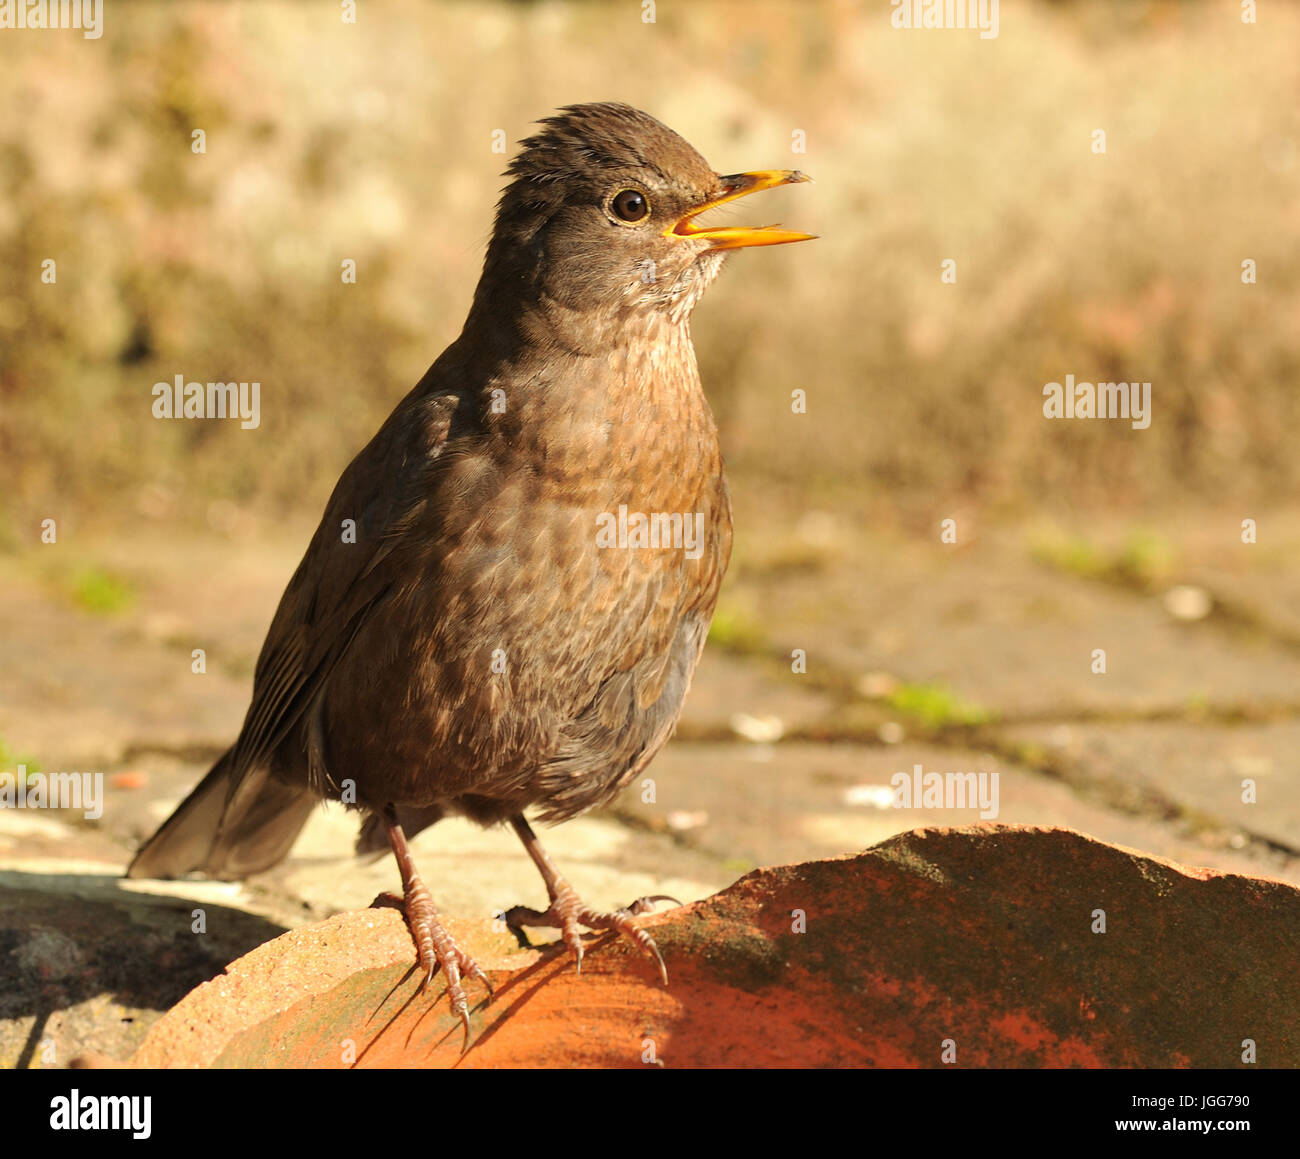 Not only people suffer from the heat of Summer. A young blackbird (Turdus merula) pants to keep cool in the heat - Stock Image